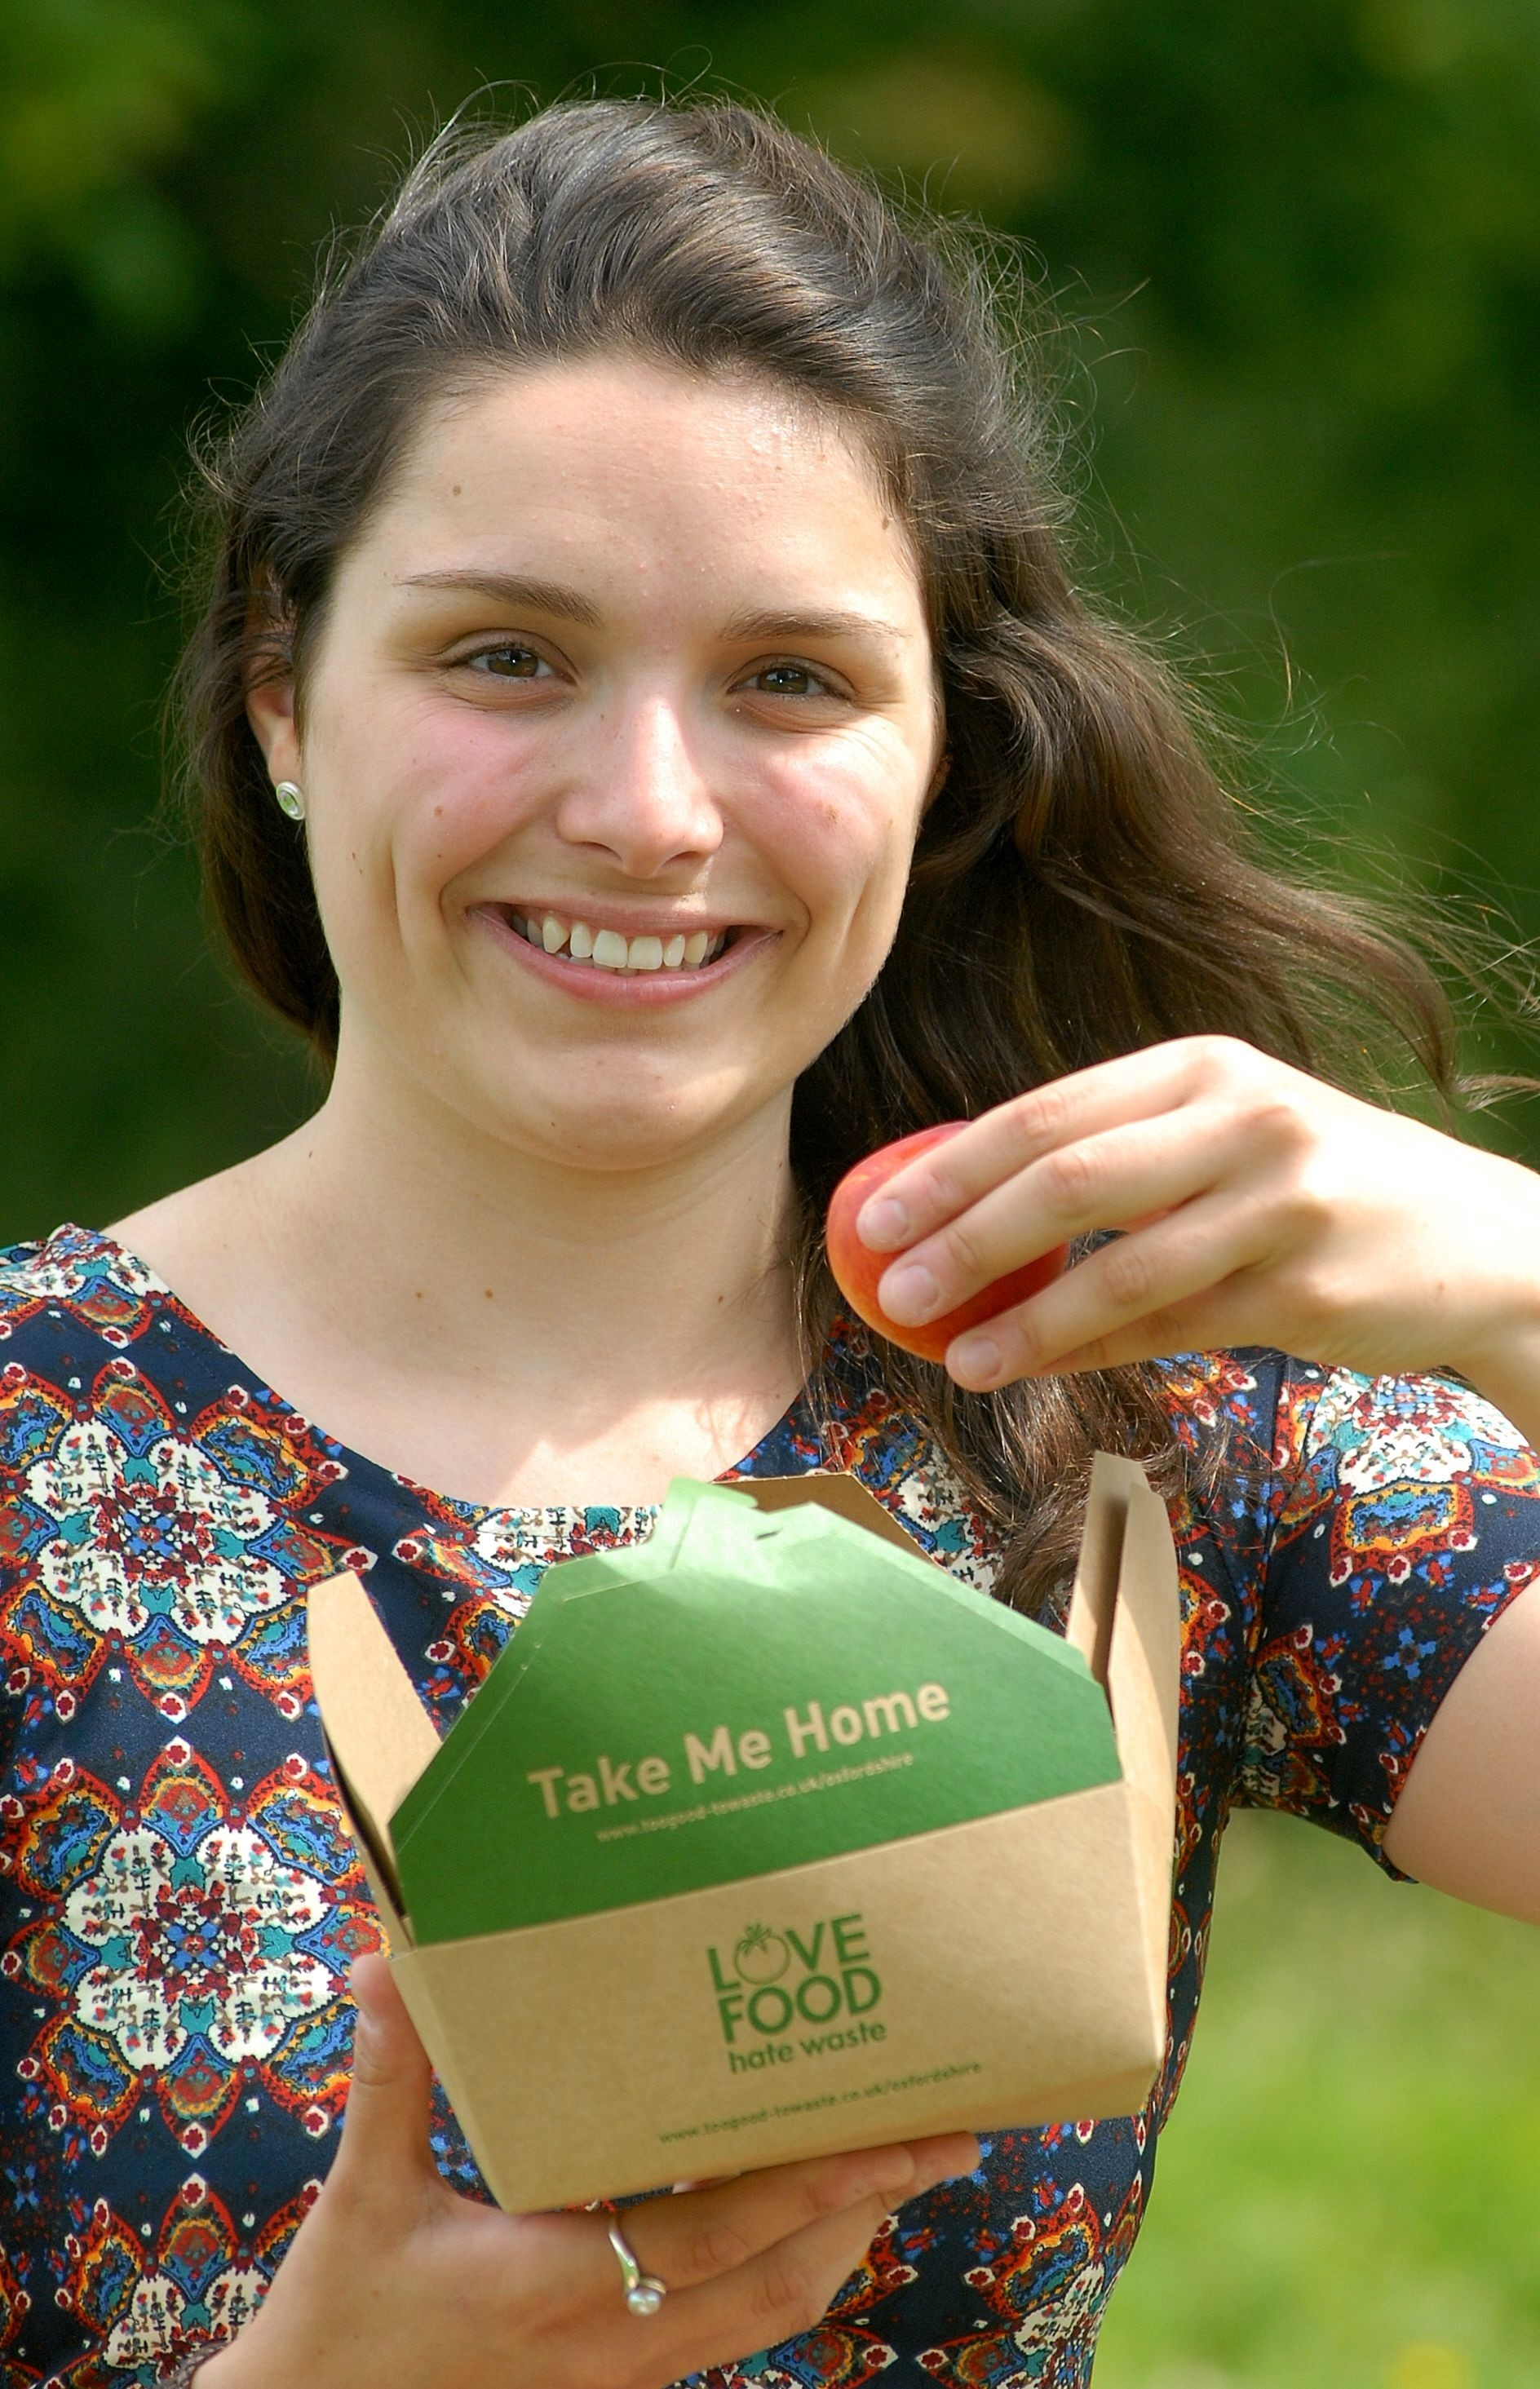 TAKE ME HOME:  Hollie Christian-Brookes with one of  Biopac's take me home boxes. tPicture by Nick Toogood. (8436921)